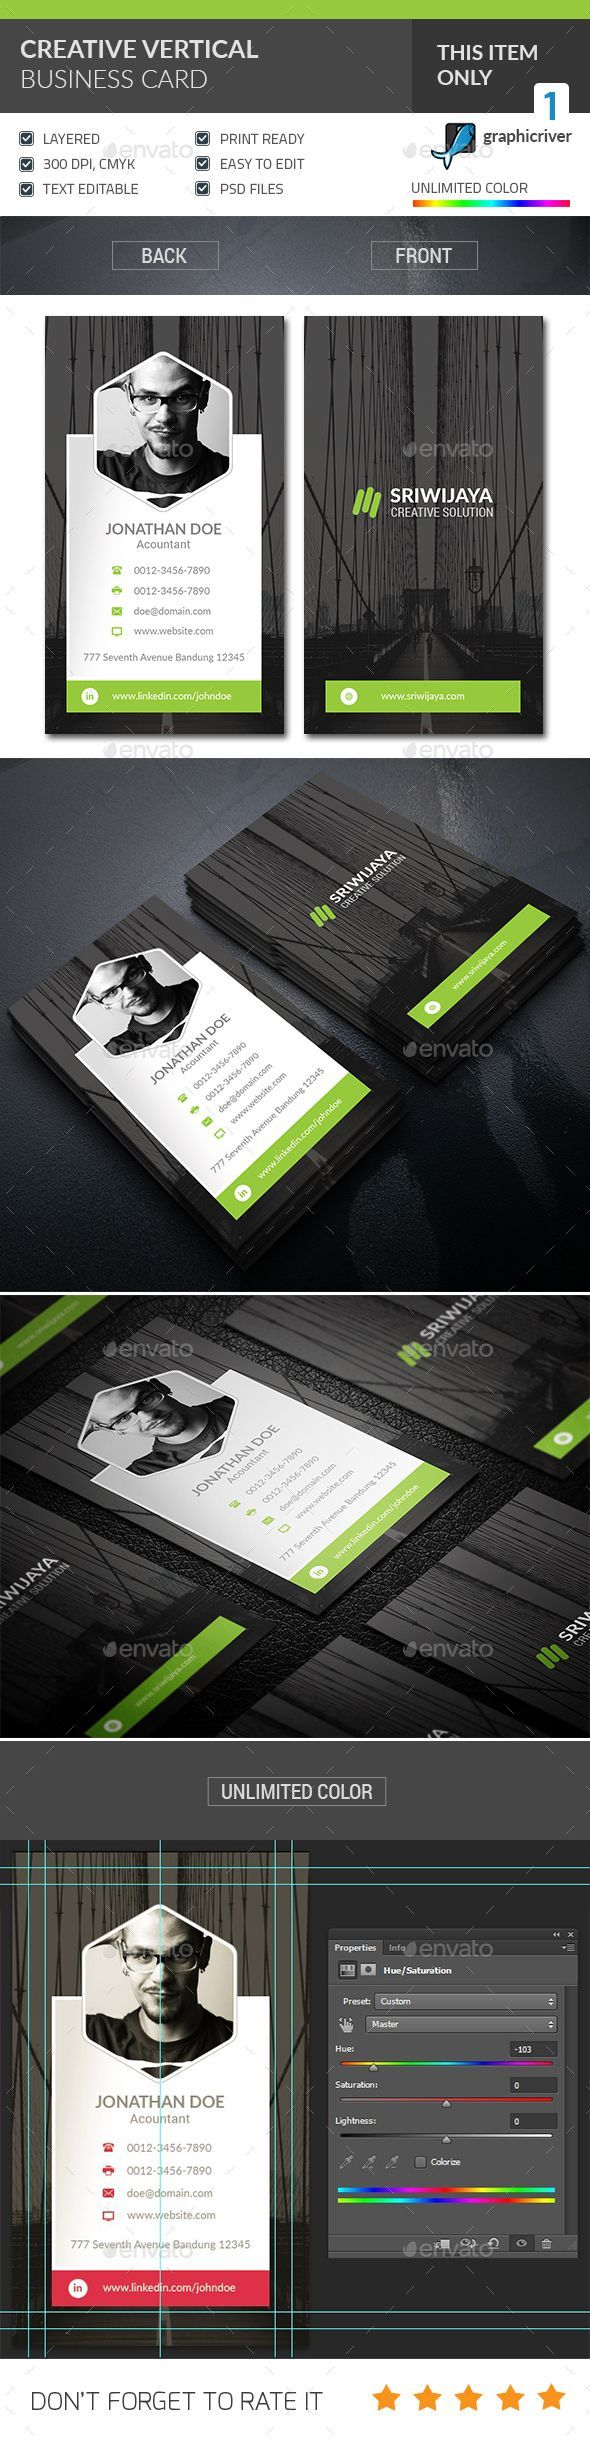 Creative Vertical Business Card | Vertical business cards, Business ...